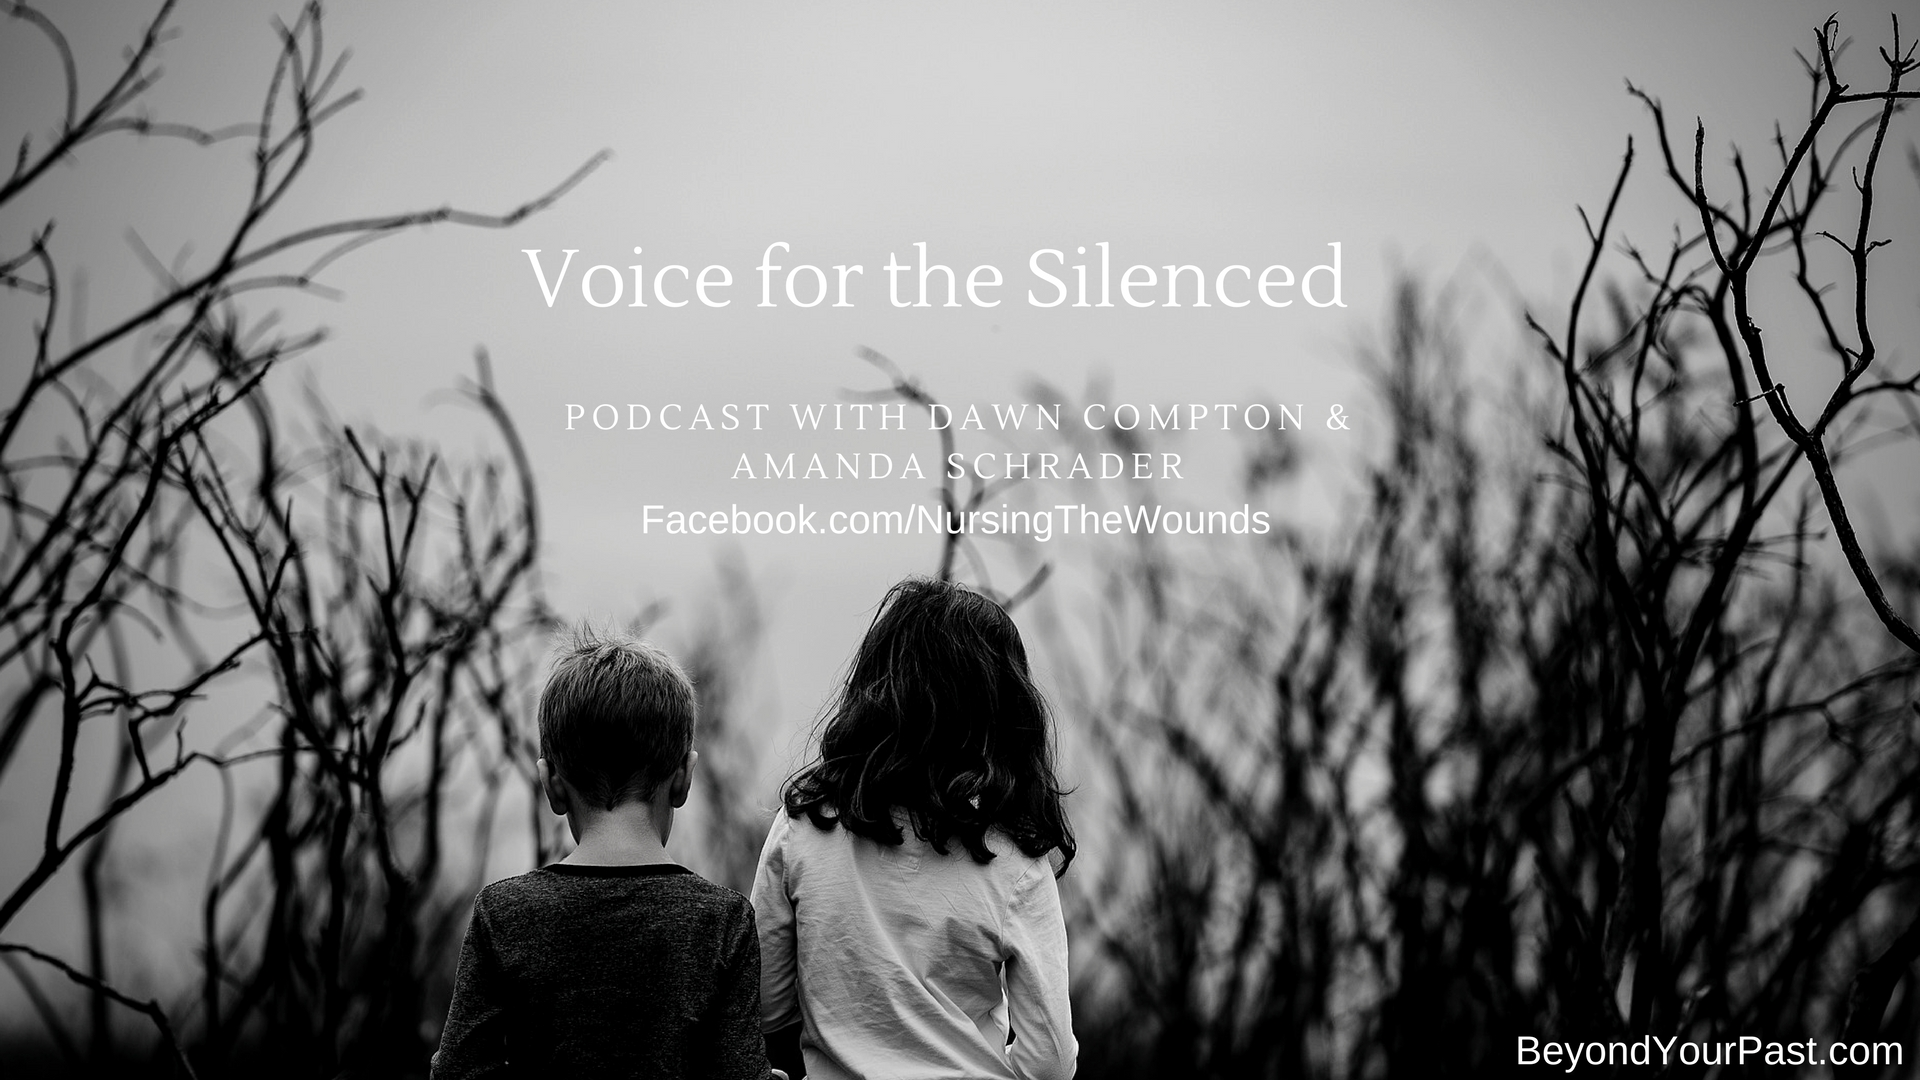 Voice for the Silenced - Podcast - Beyond Your Past